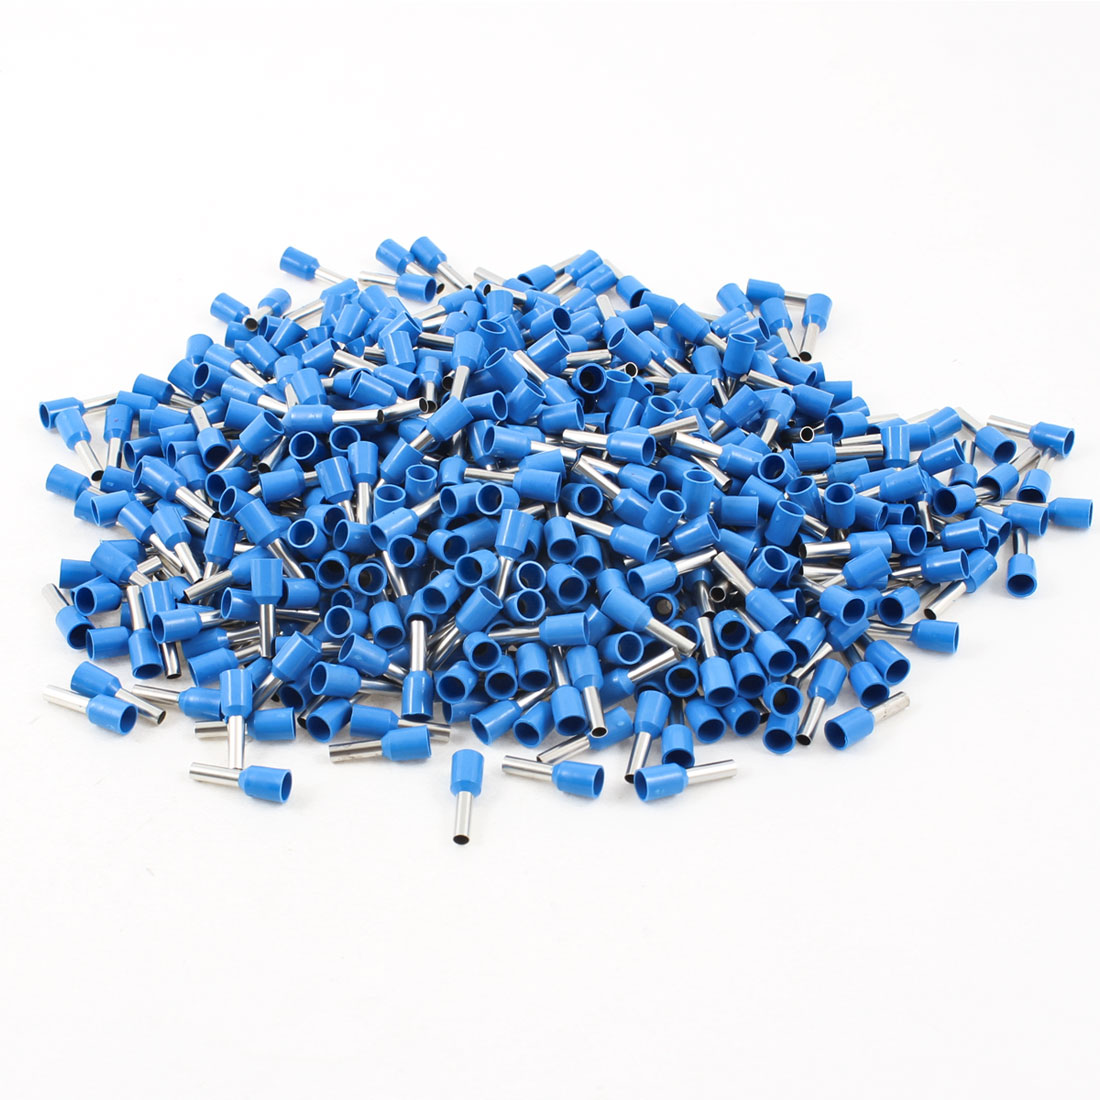 PVC Blue 14 AWG Insulating Tube Terminal Connector 1000pcs